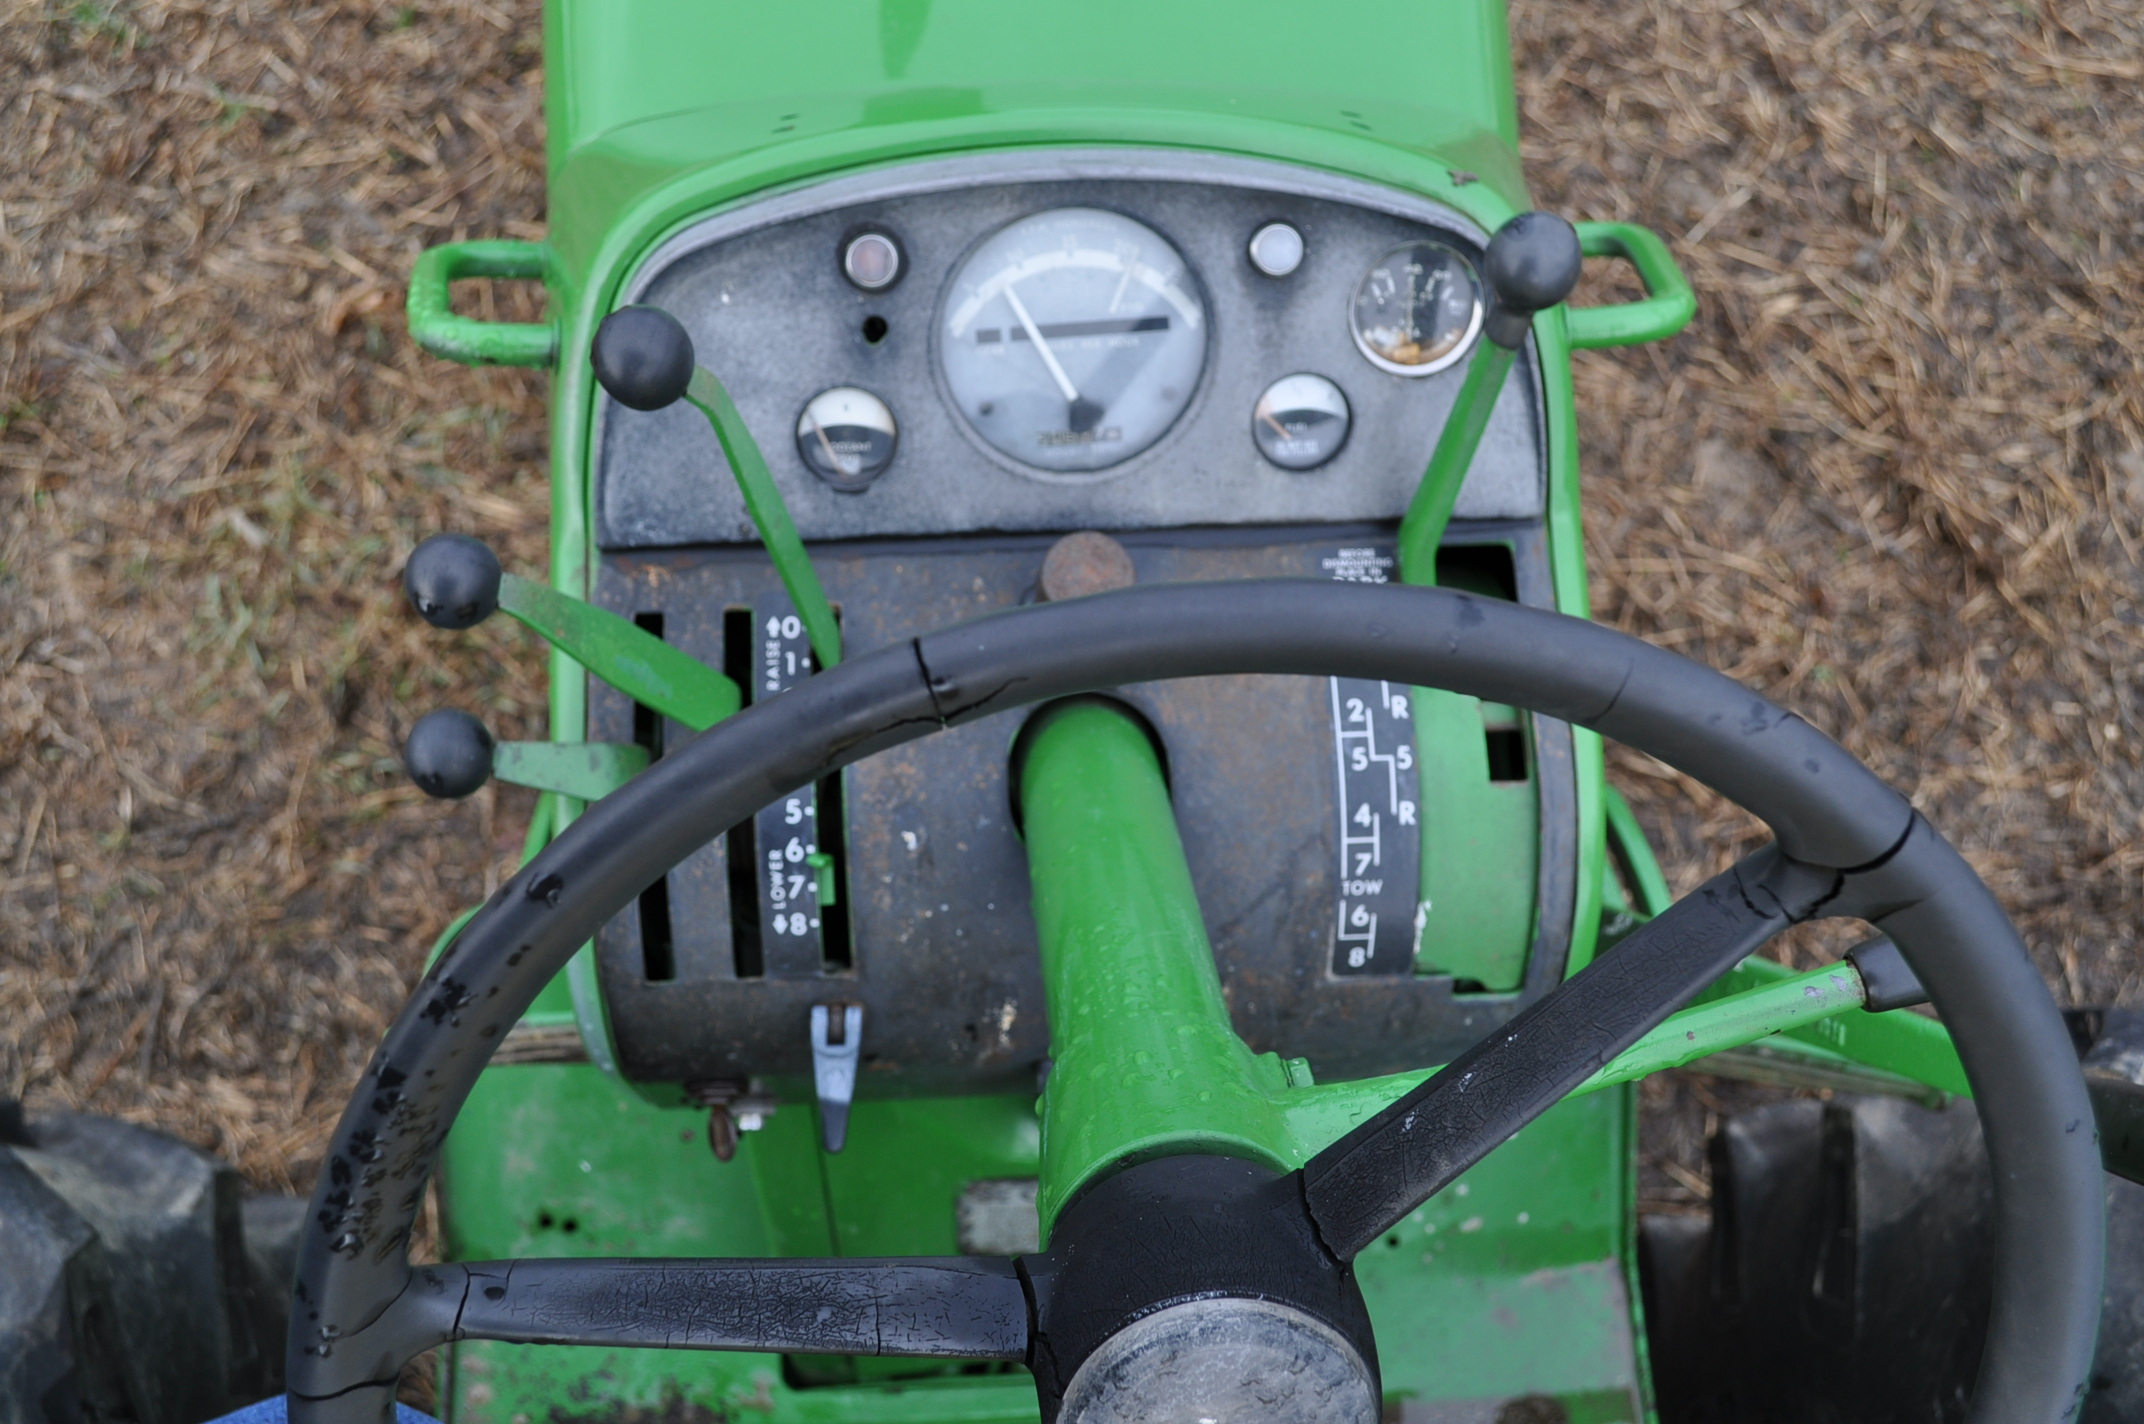 John Deere 3020 tractor, diesel, 18.4-34 rear, clamp on duals, 11L-15 narrow front, Syncro, 2 - Image 14 of 15